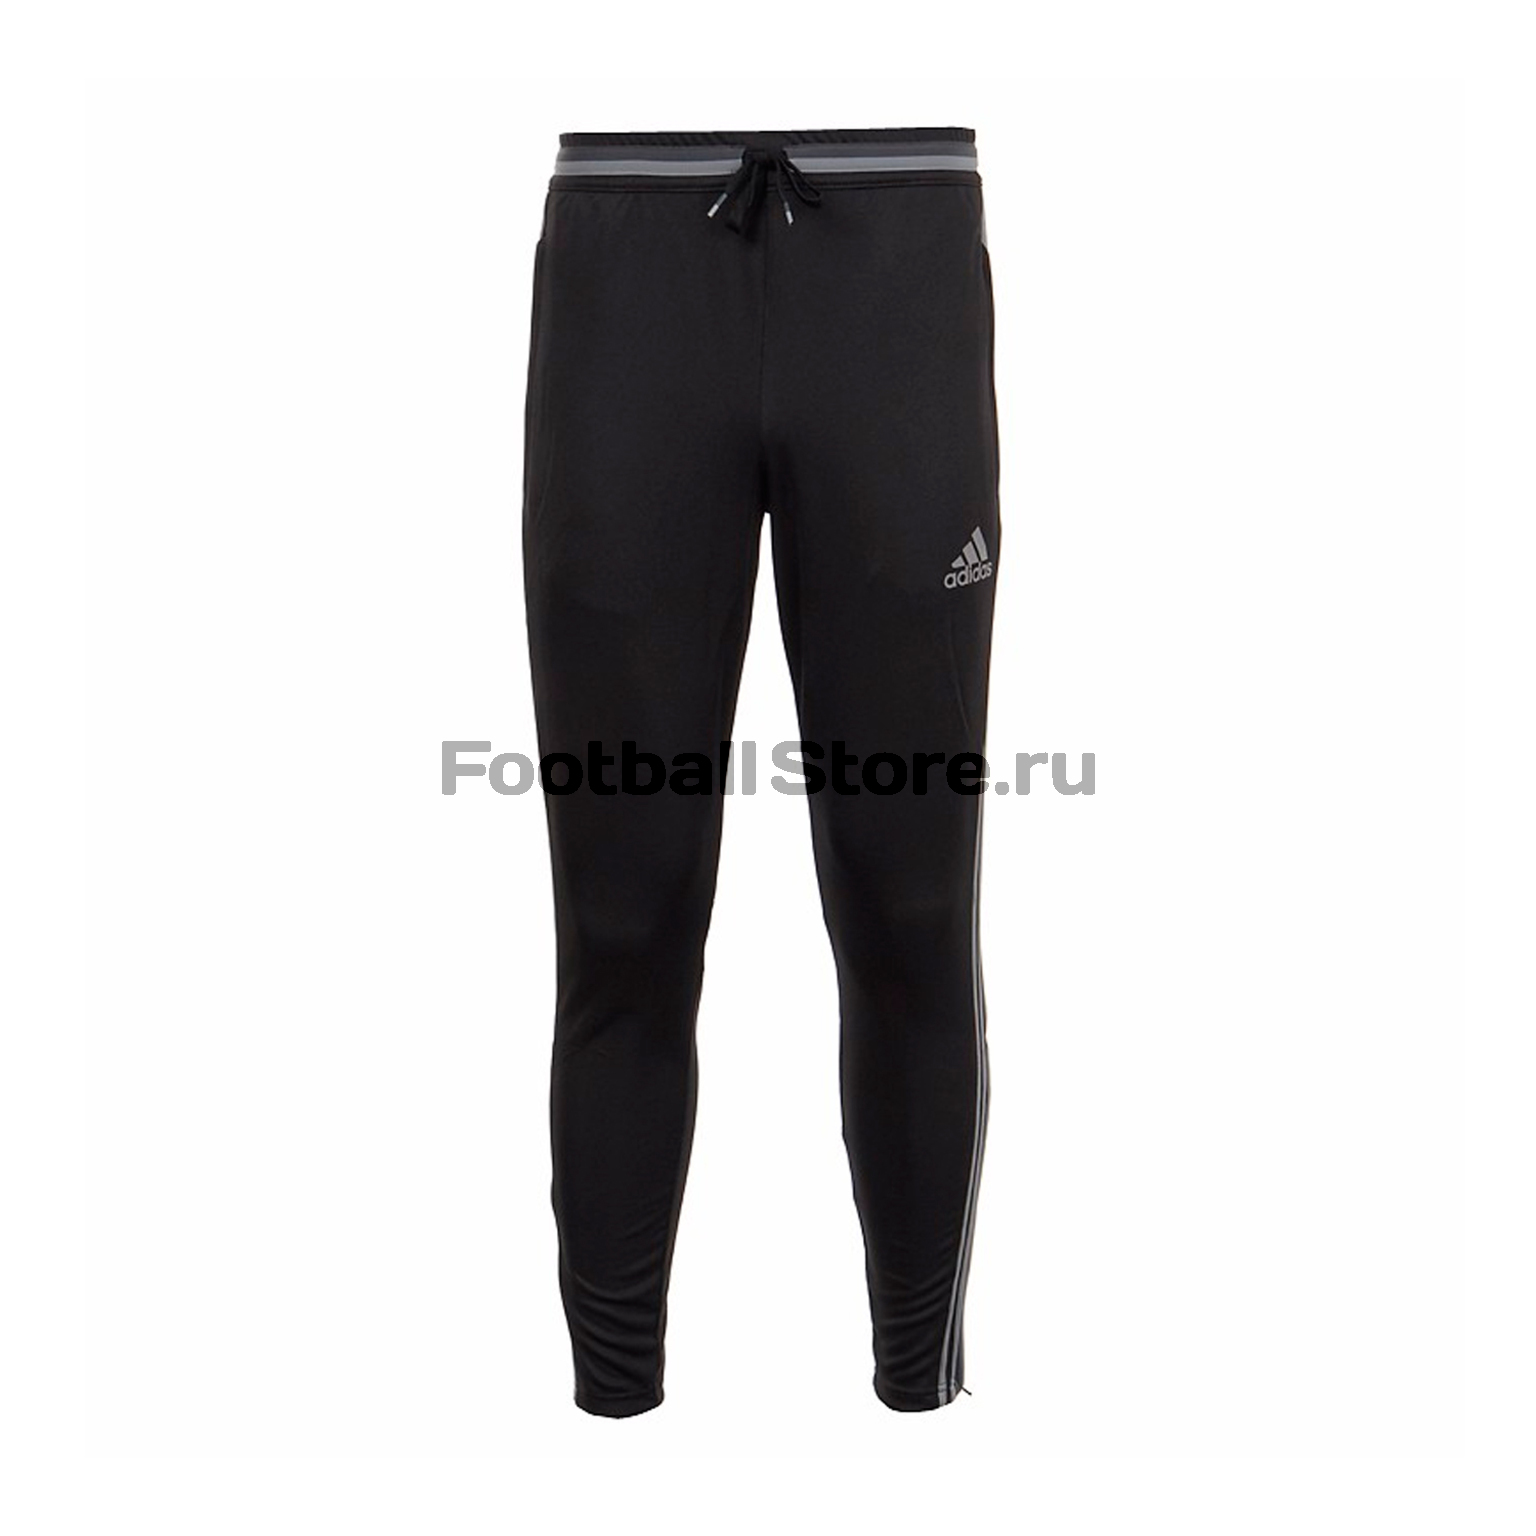 Брюки Adidas Con16 TRG PNT AN9848